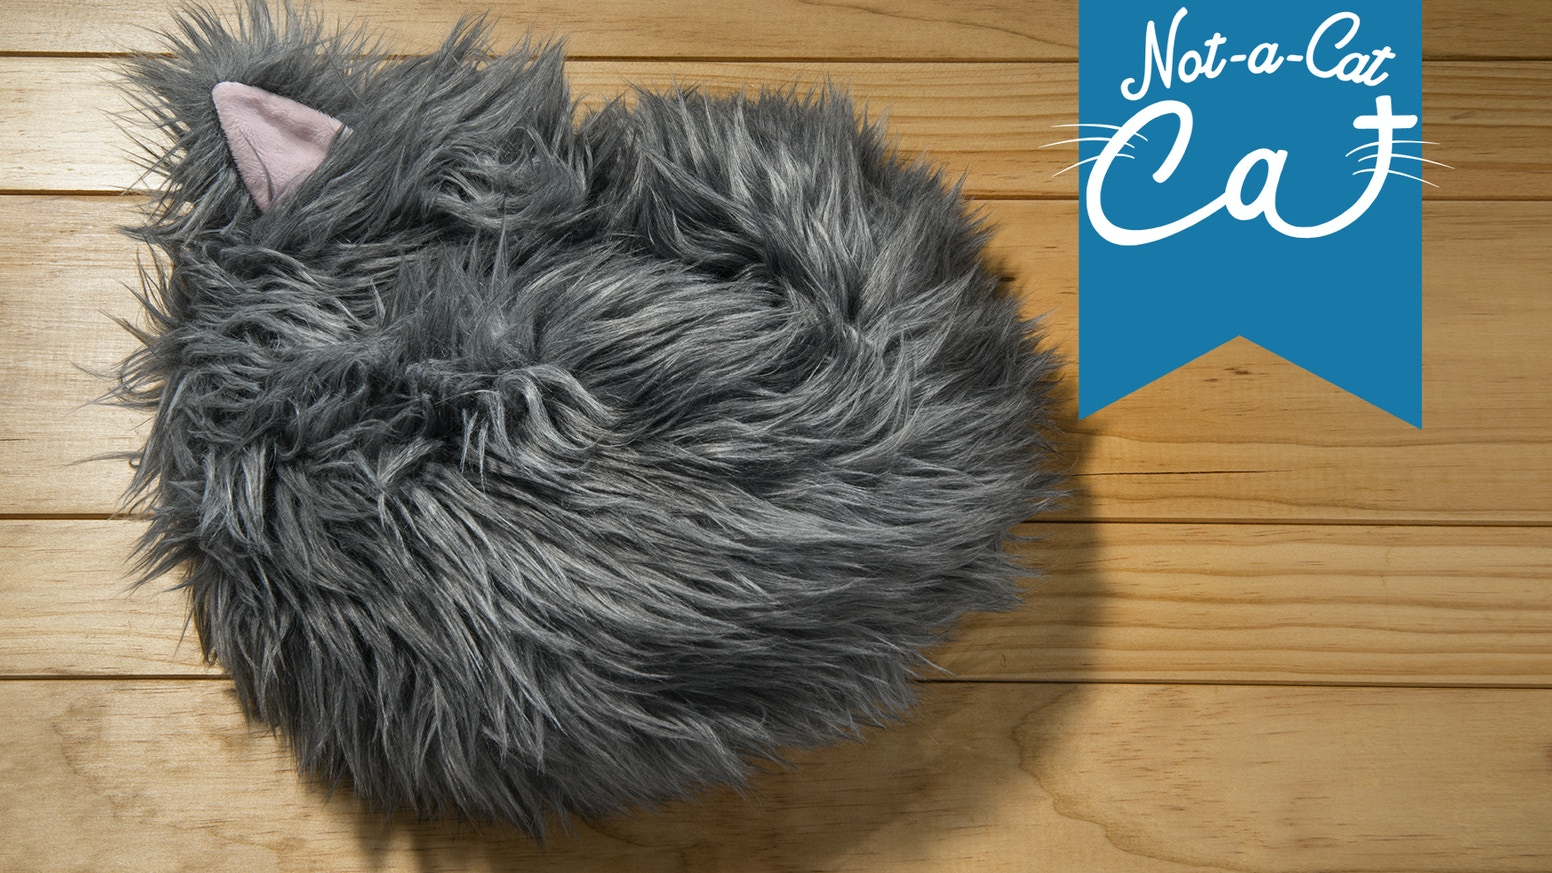 Introducing the first cat that's not a cat: The Not-a-Cat Cat!  Created by Vat19.